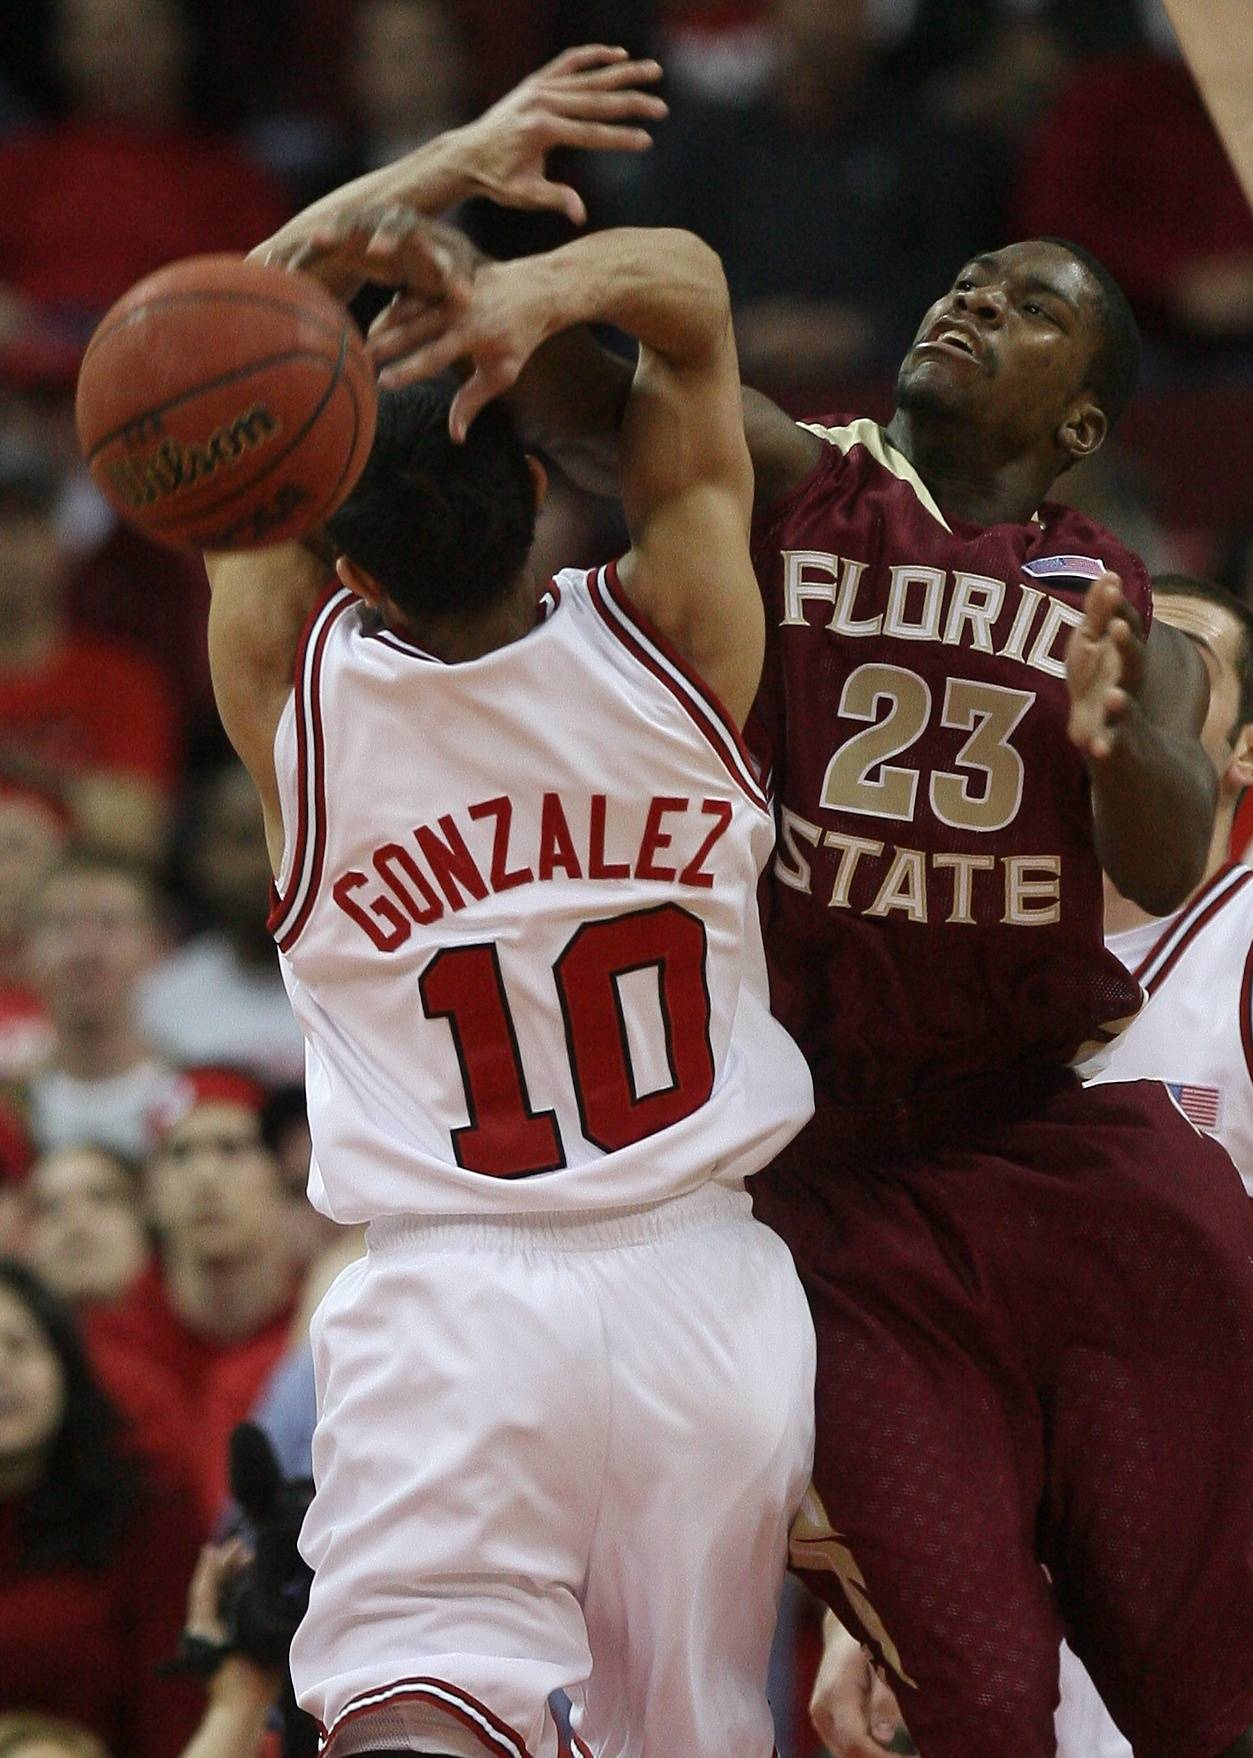 Florida State's Toney Douglas, right, knocks the rebound away from N.C. State's Javier Gonzalez during the first half of N.C. State's game against Florida State University, Wednesday, Feb. 27, 2008, at the RBC Center, in Raleigh, N.C. (AP Photo/The News & Observer,Ethan Hyman)